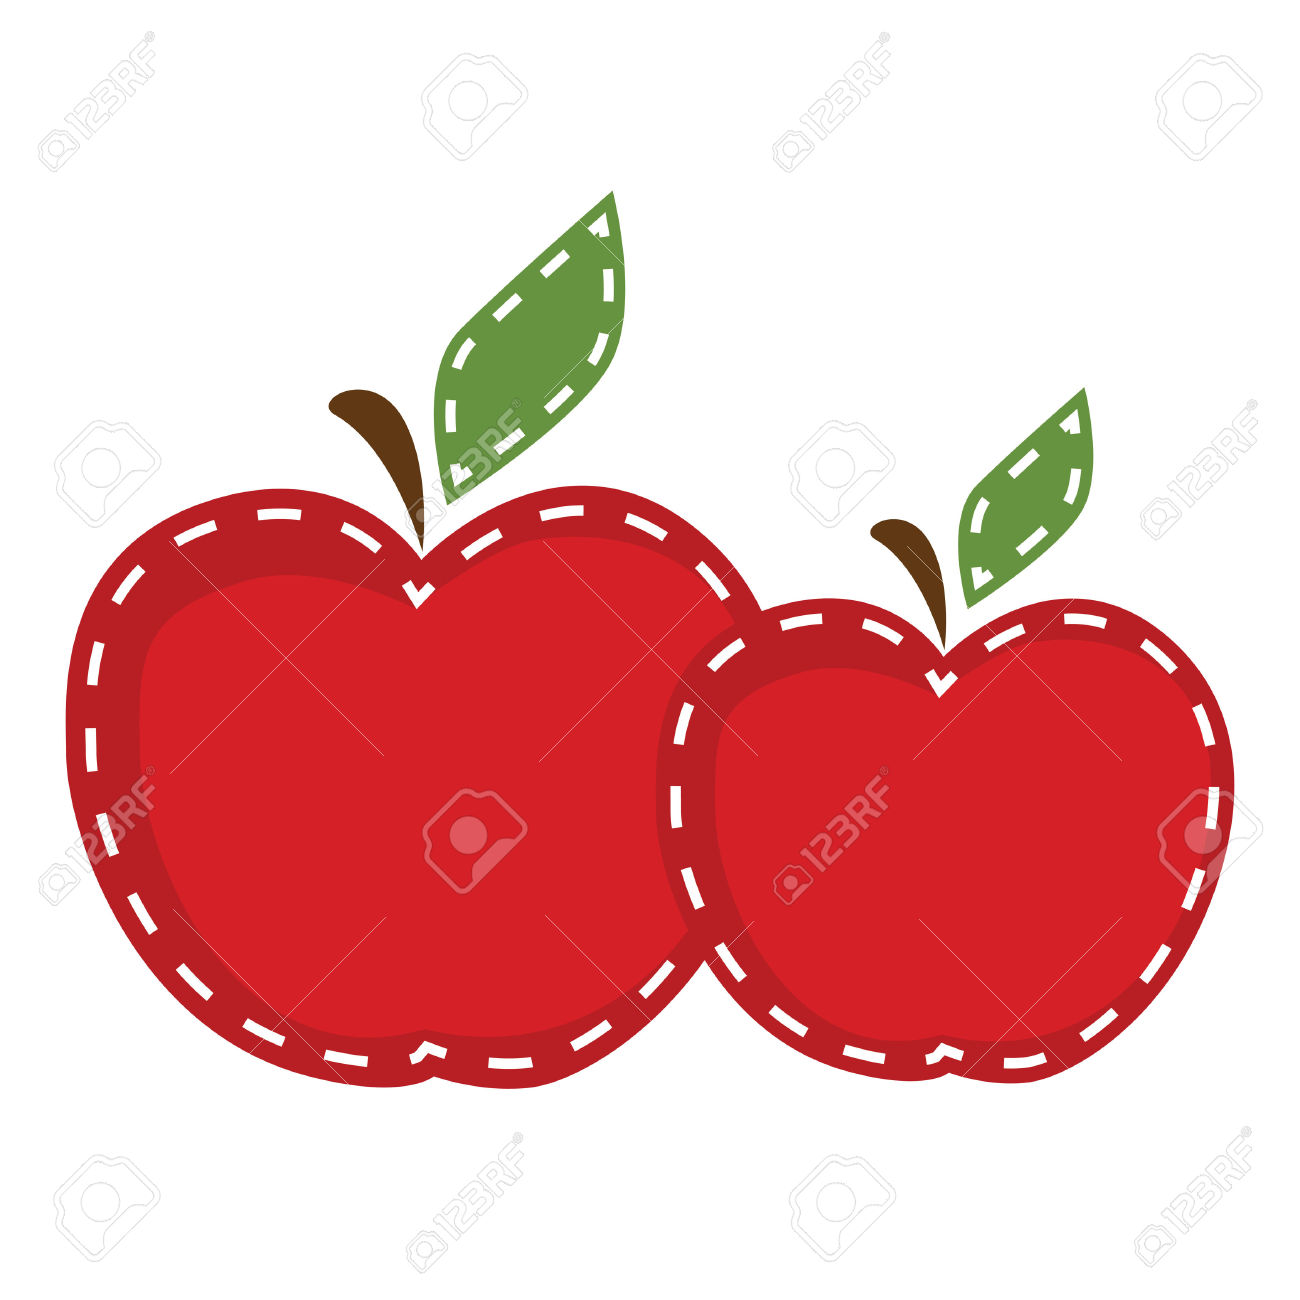 Two Apples With Cute Stitching On A Transparent Background, For.